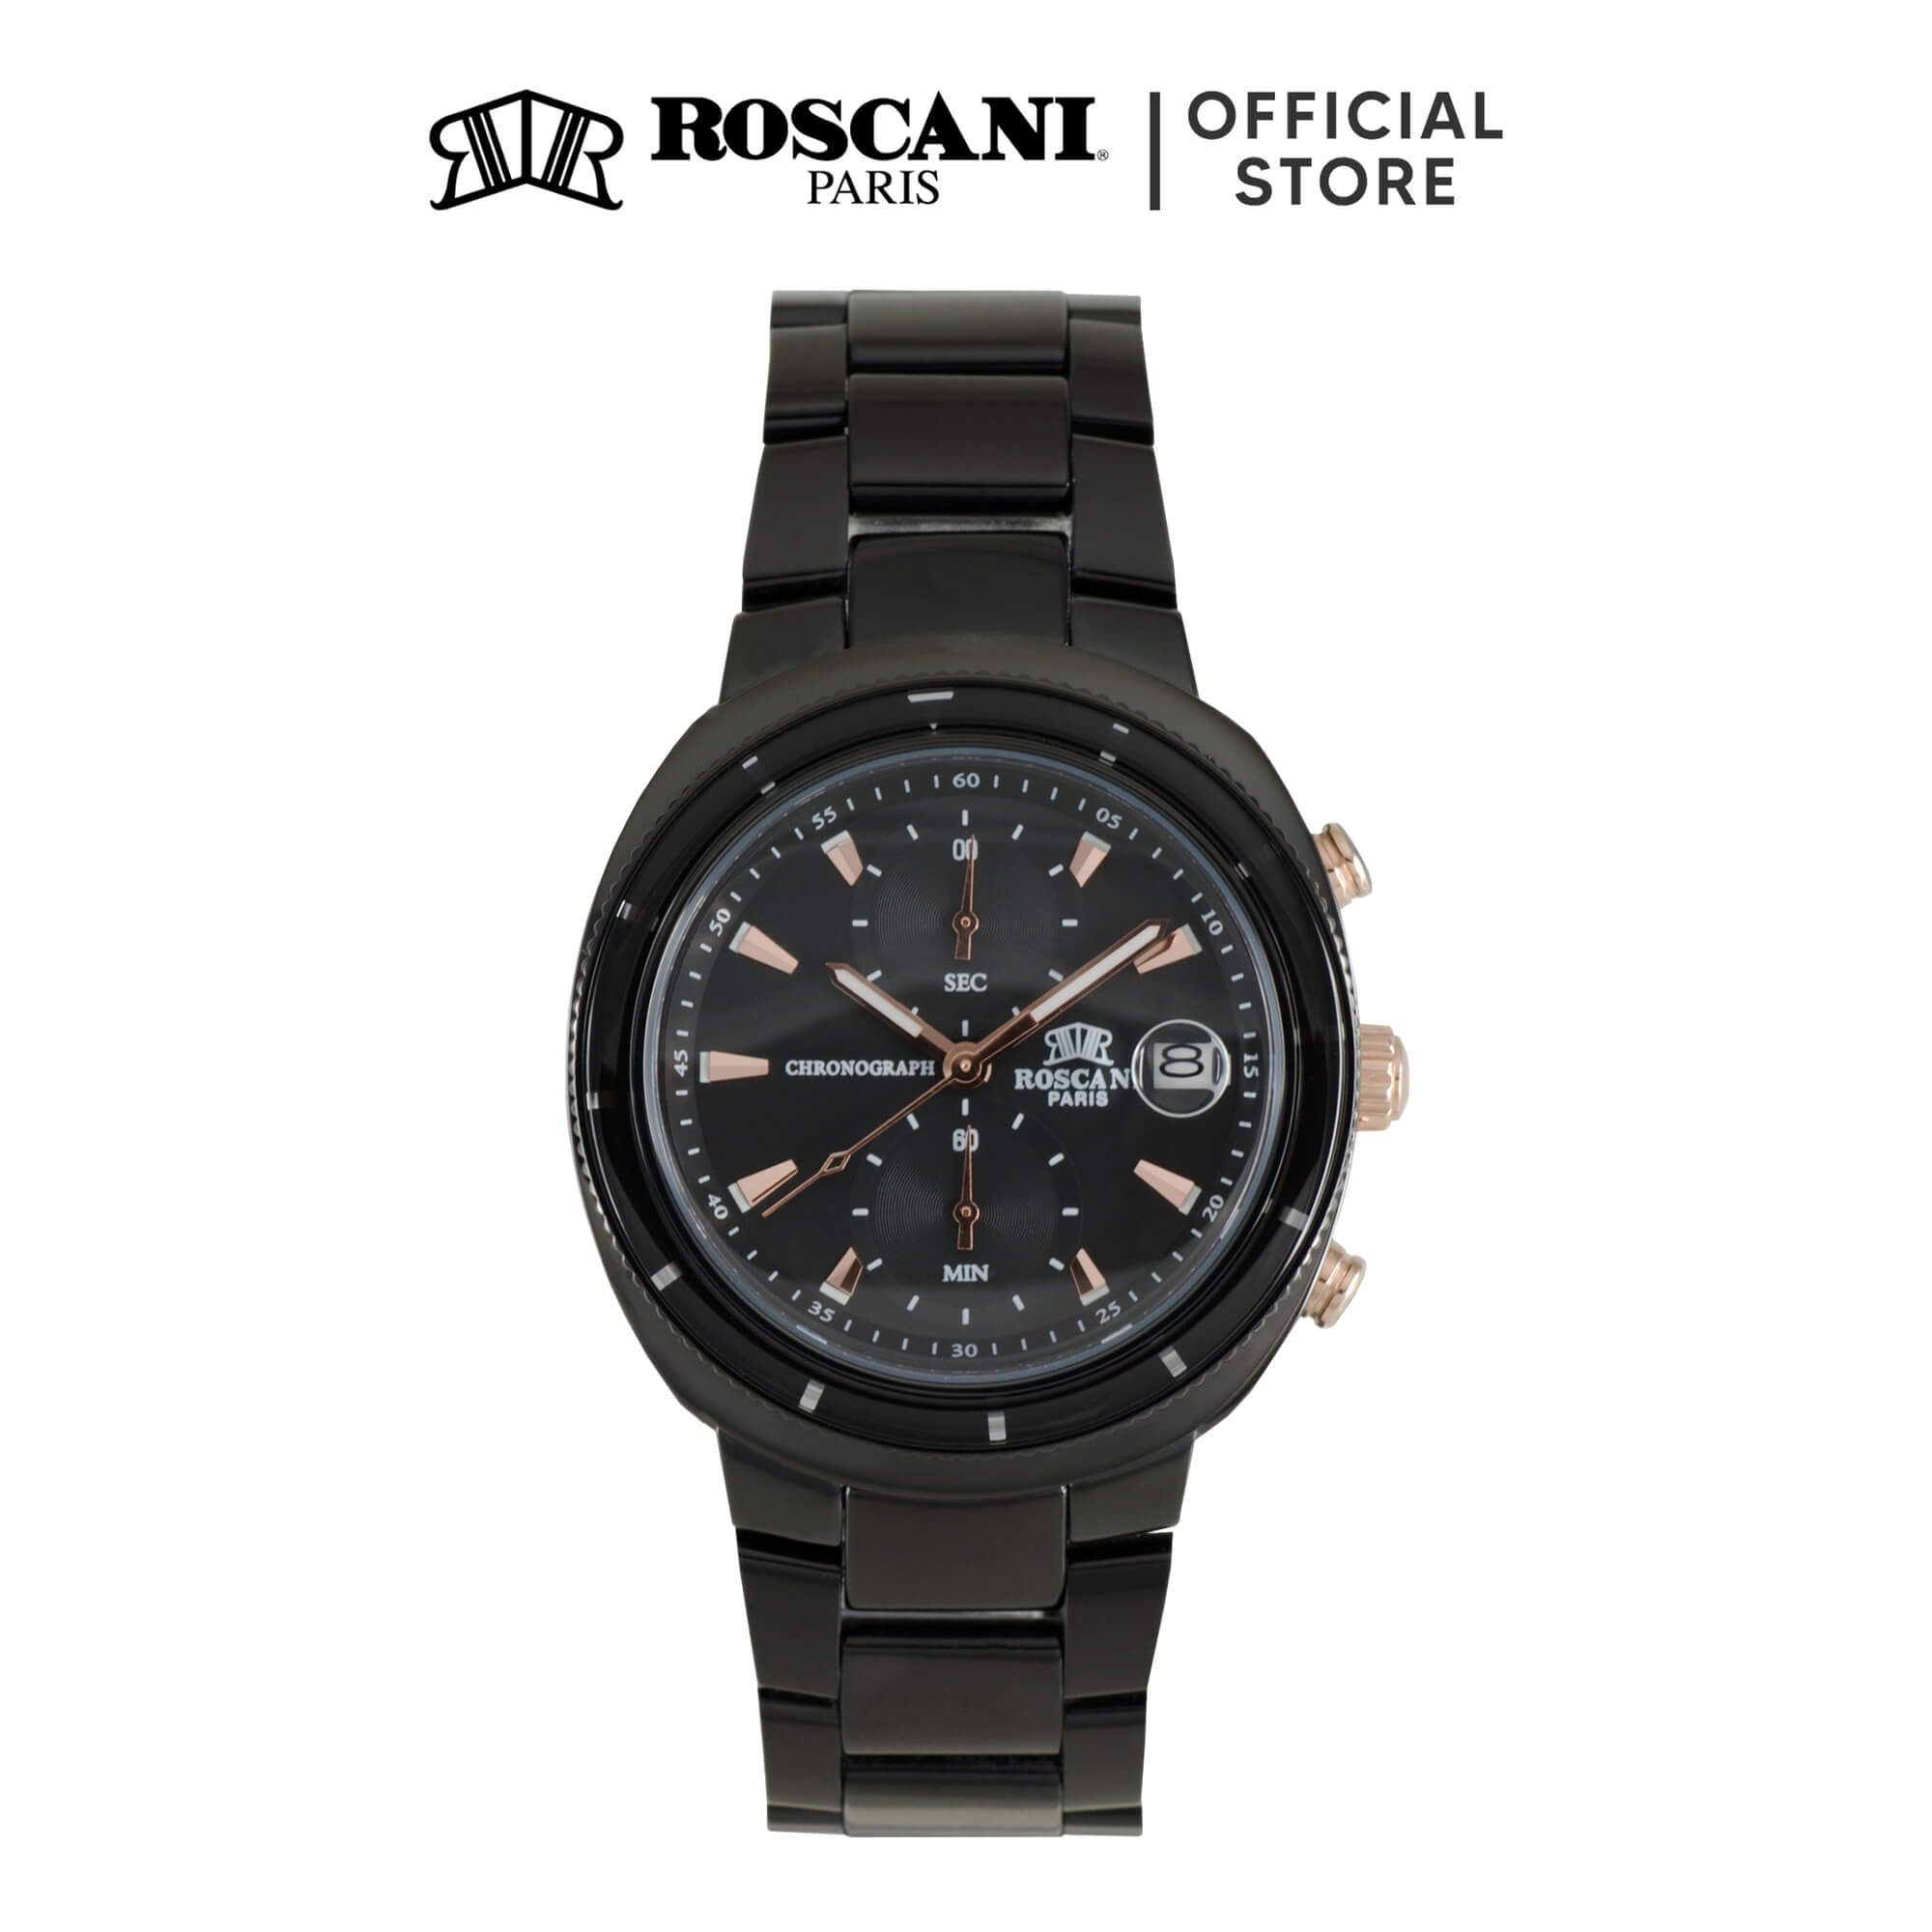 Roscani Oscar 971 (Ceramic Bezel + WR 5ATM) Bracelet Men Watch